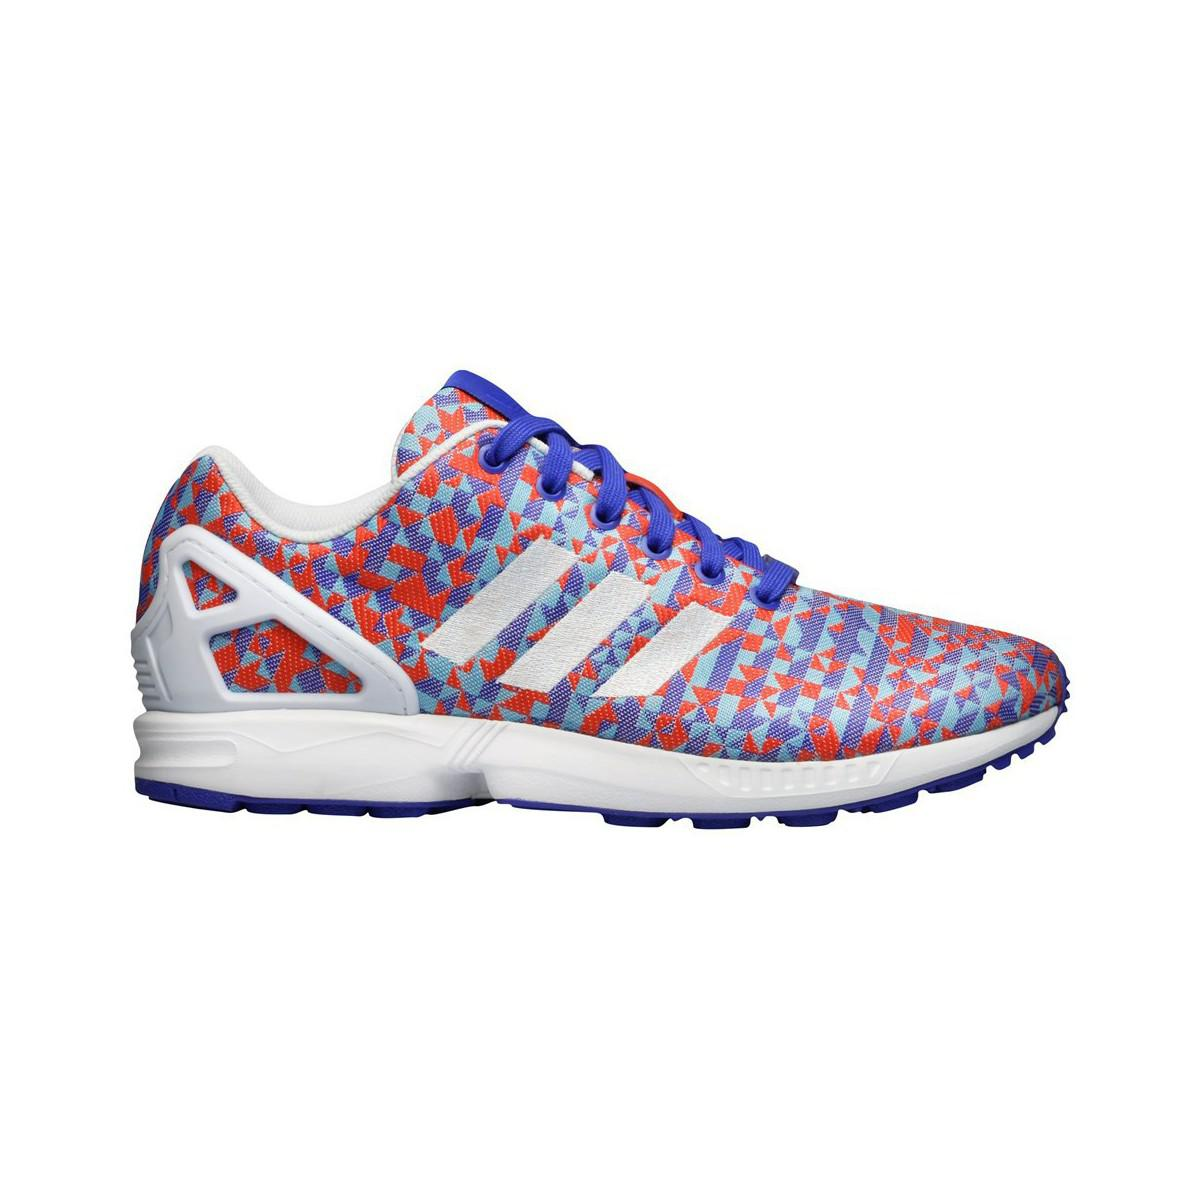 5ffc9543d193f Adidas Zx Flux Weave Women s Shoes (trainers) In White in White - Lyst